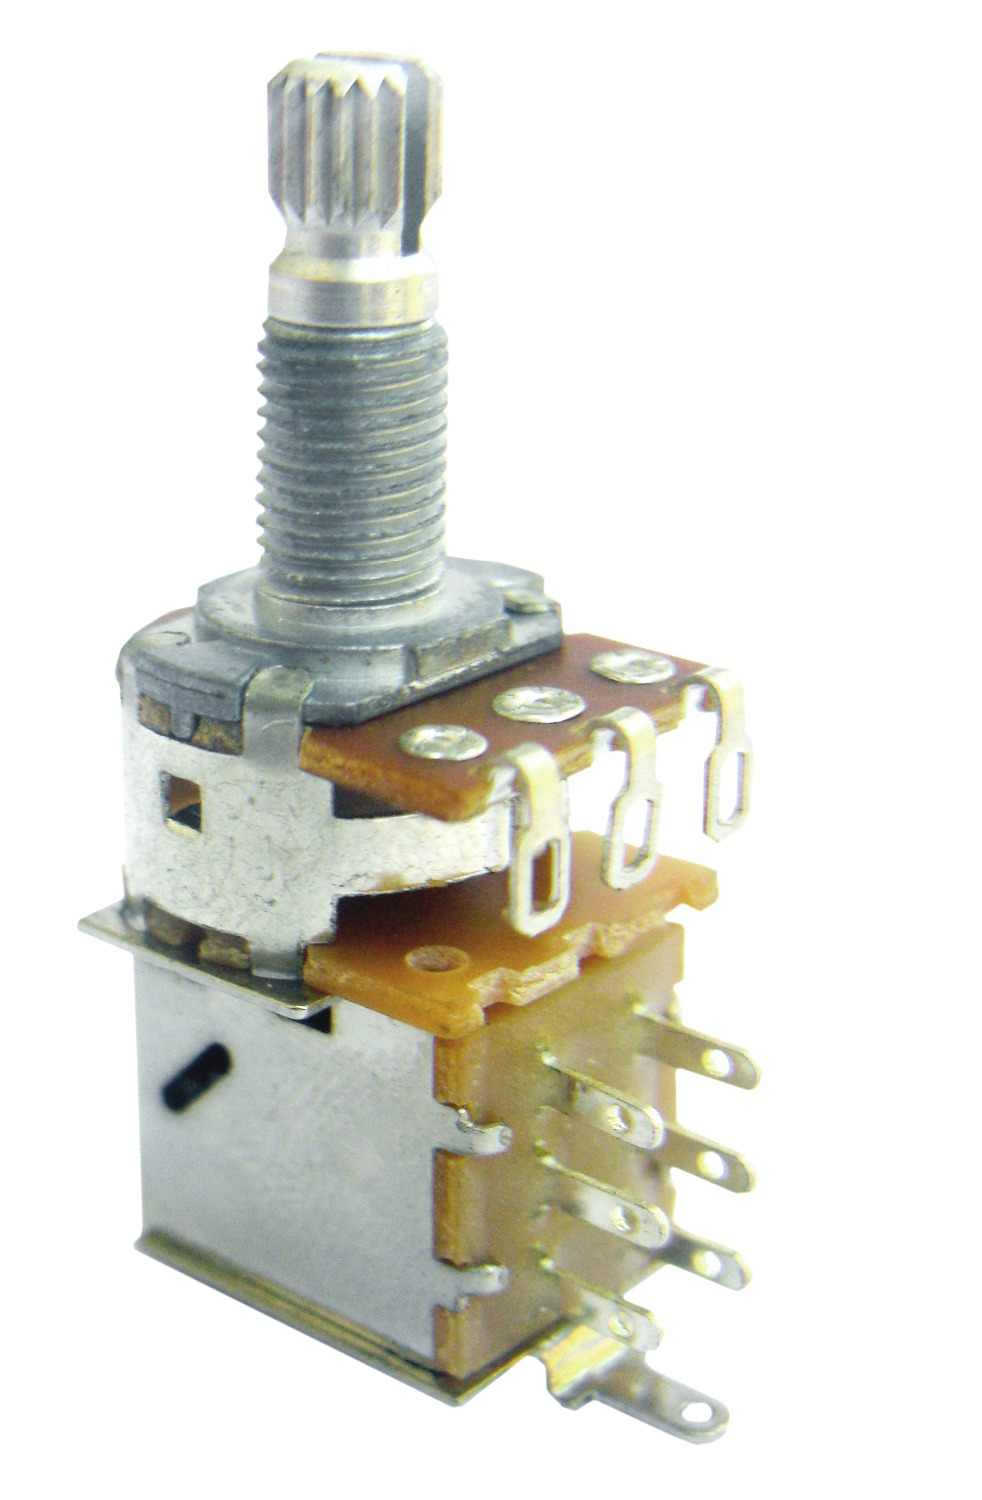 center detend push pull dpdt a 50k a 100k b50k b100k with central click switch potentiometer [ 982 x 1500 Pixel ]